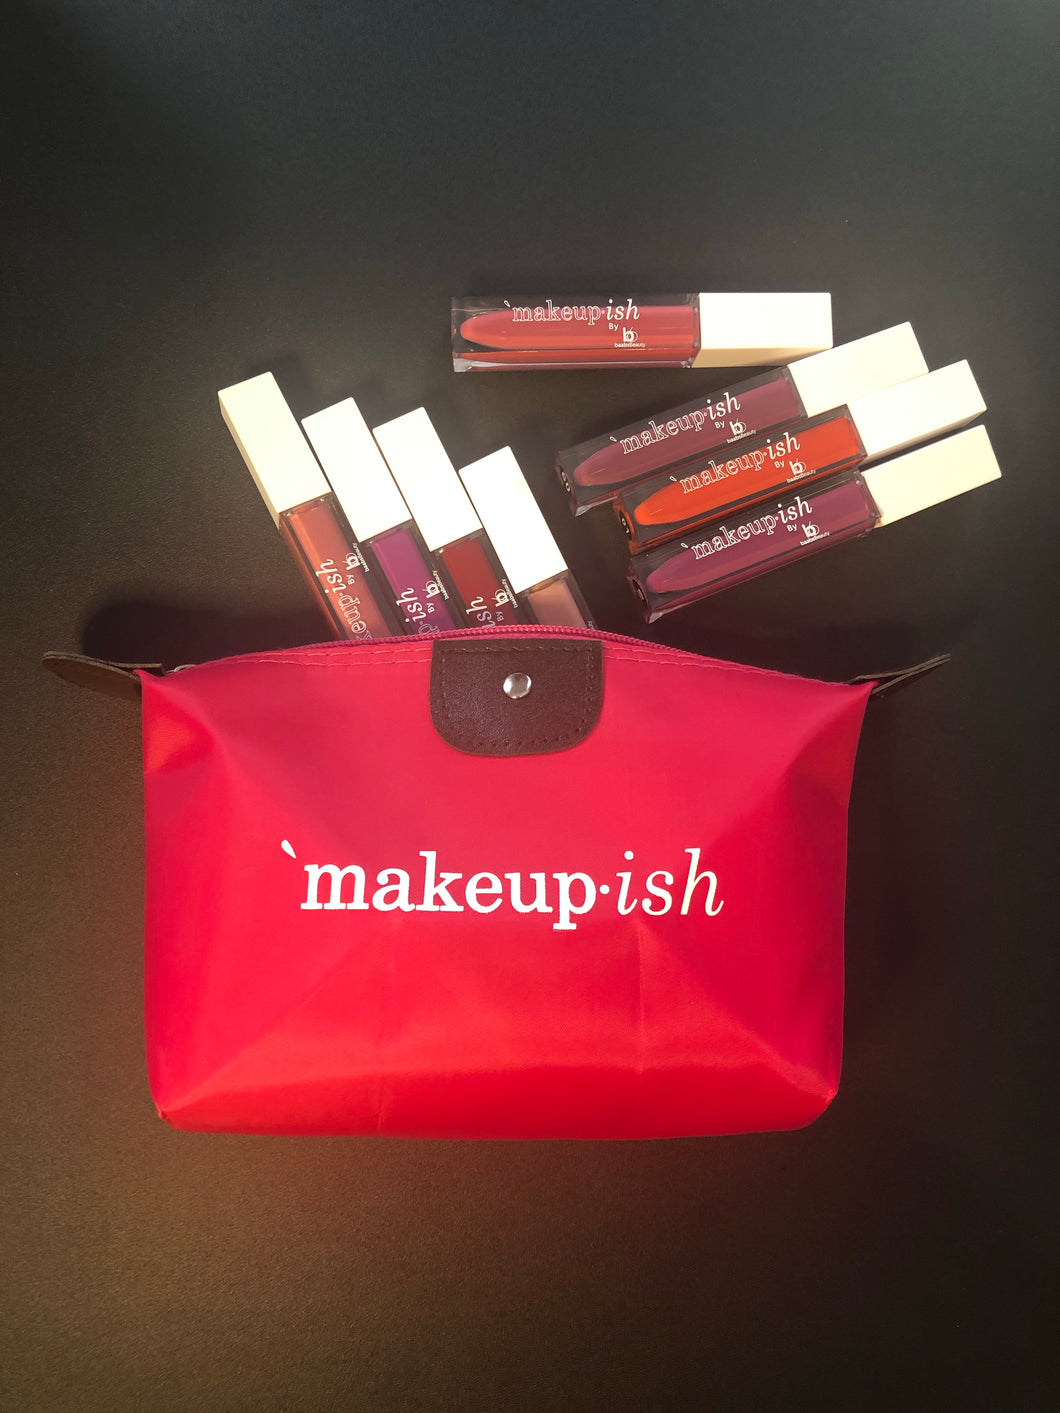 Makeup -ish Bundle